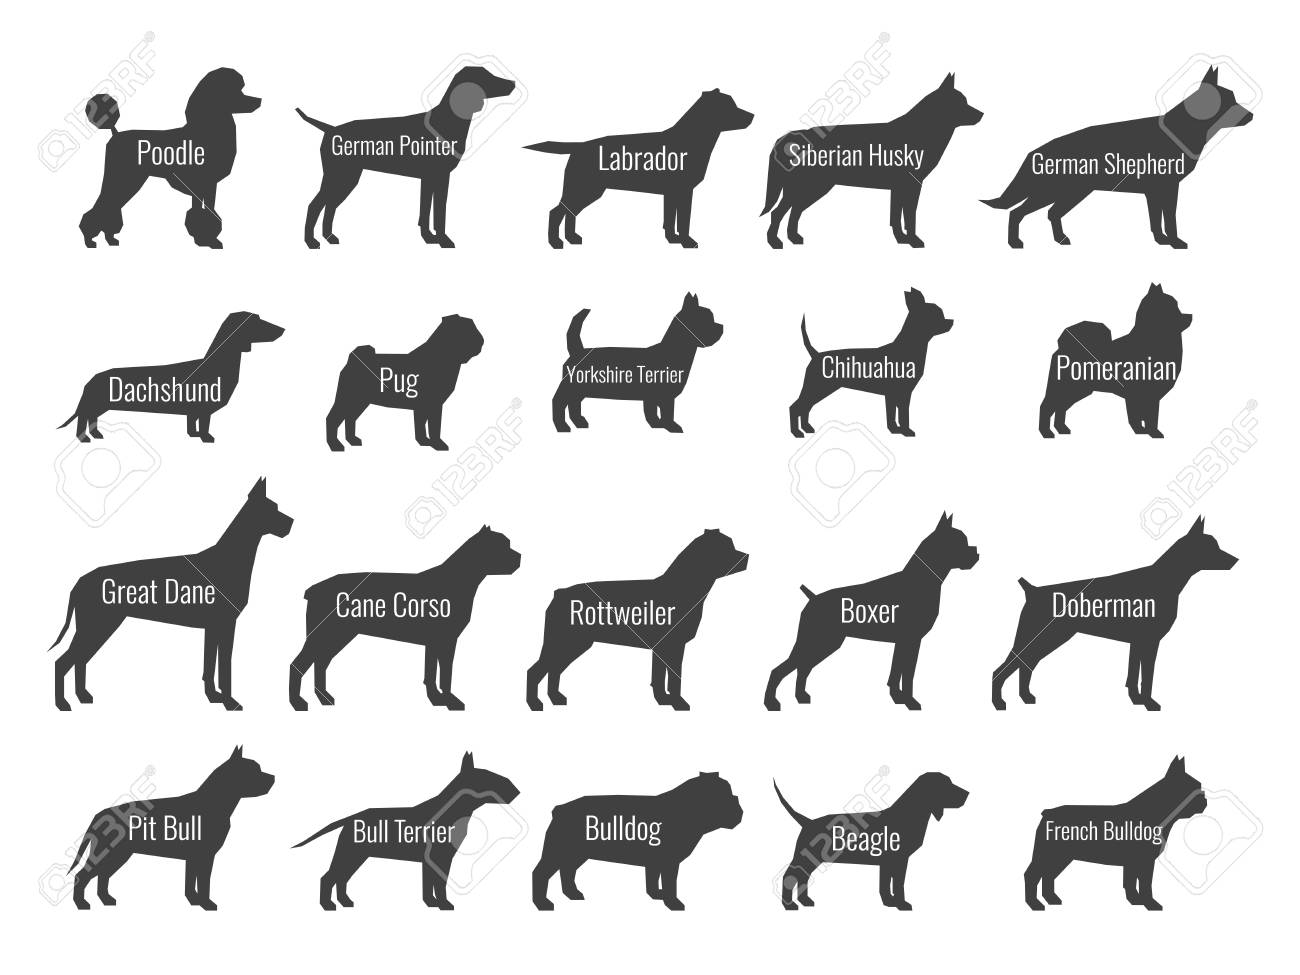 Black dog breeds vector silhouettes isolated on white background - 102080234